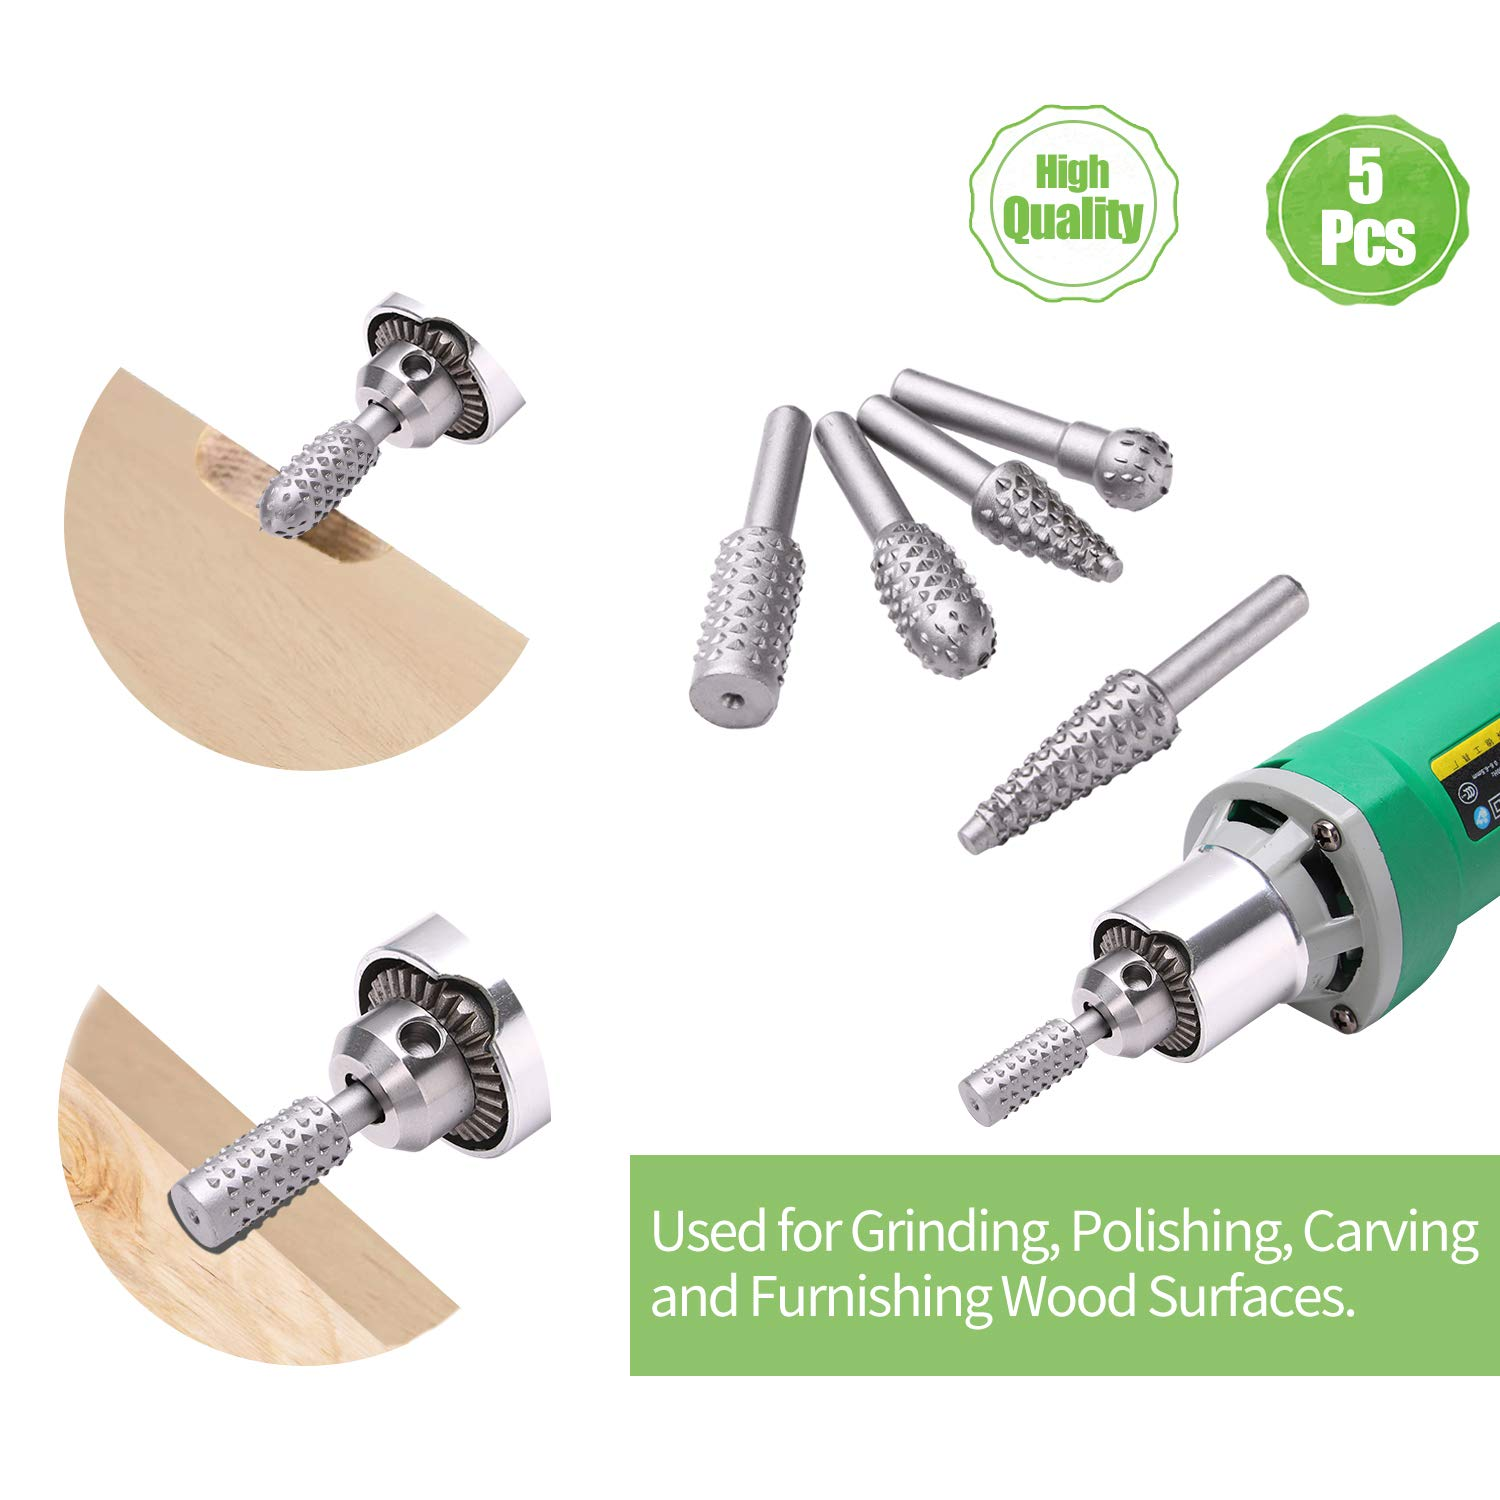 4-1//2 Inch Grinder Wood Carving Disc 2 Pack 5 Pcs-Carbide Burr, 5 Pcs-Sand Paper Multi-Function Angle Grinder Blade with 10 Accessories